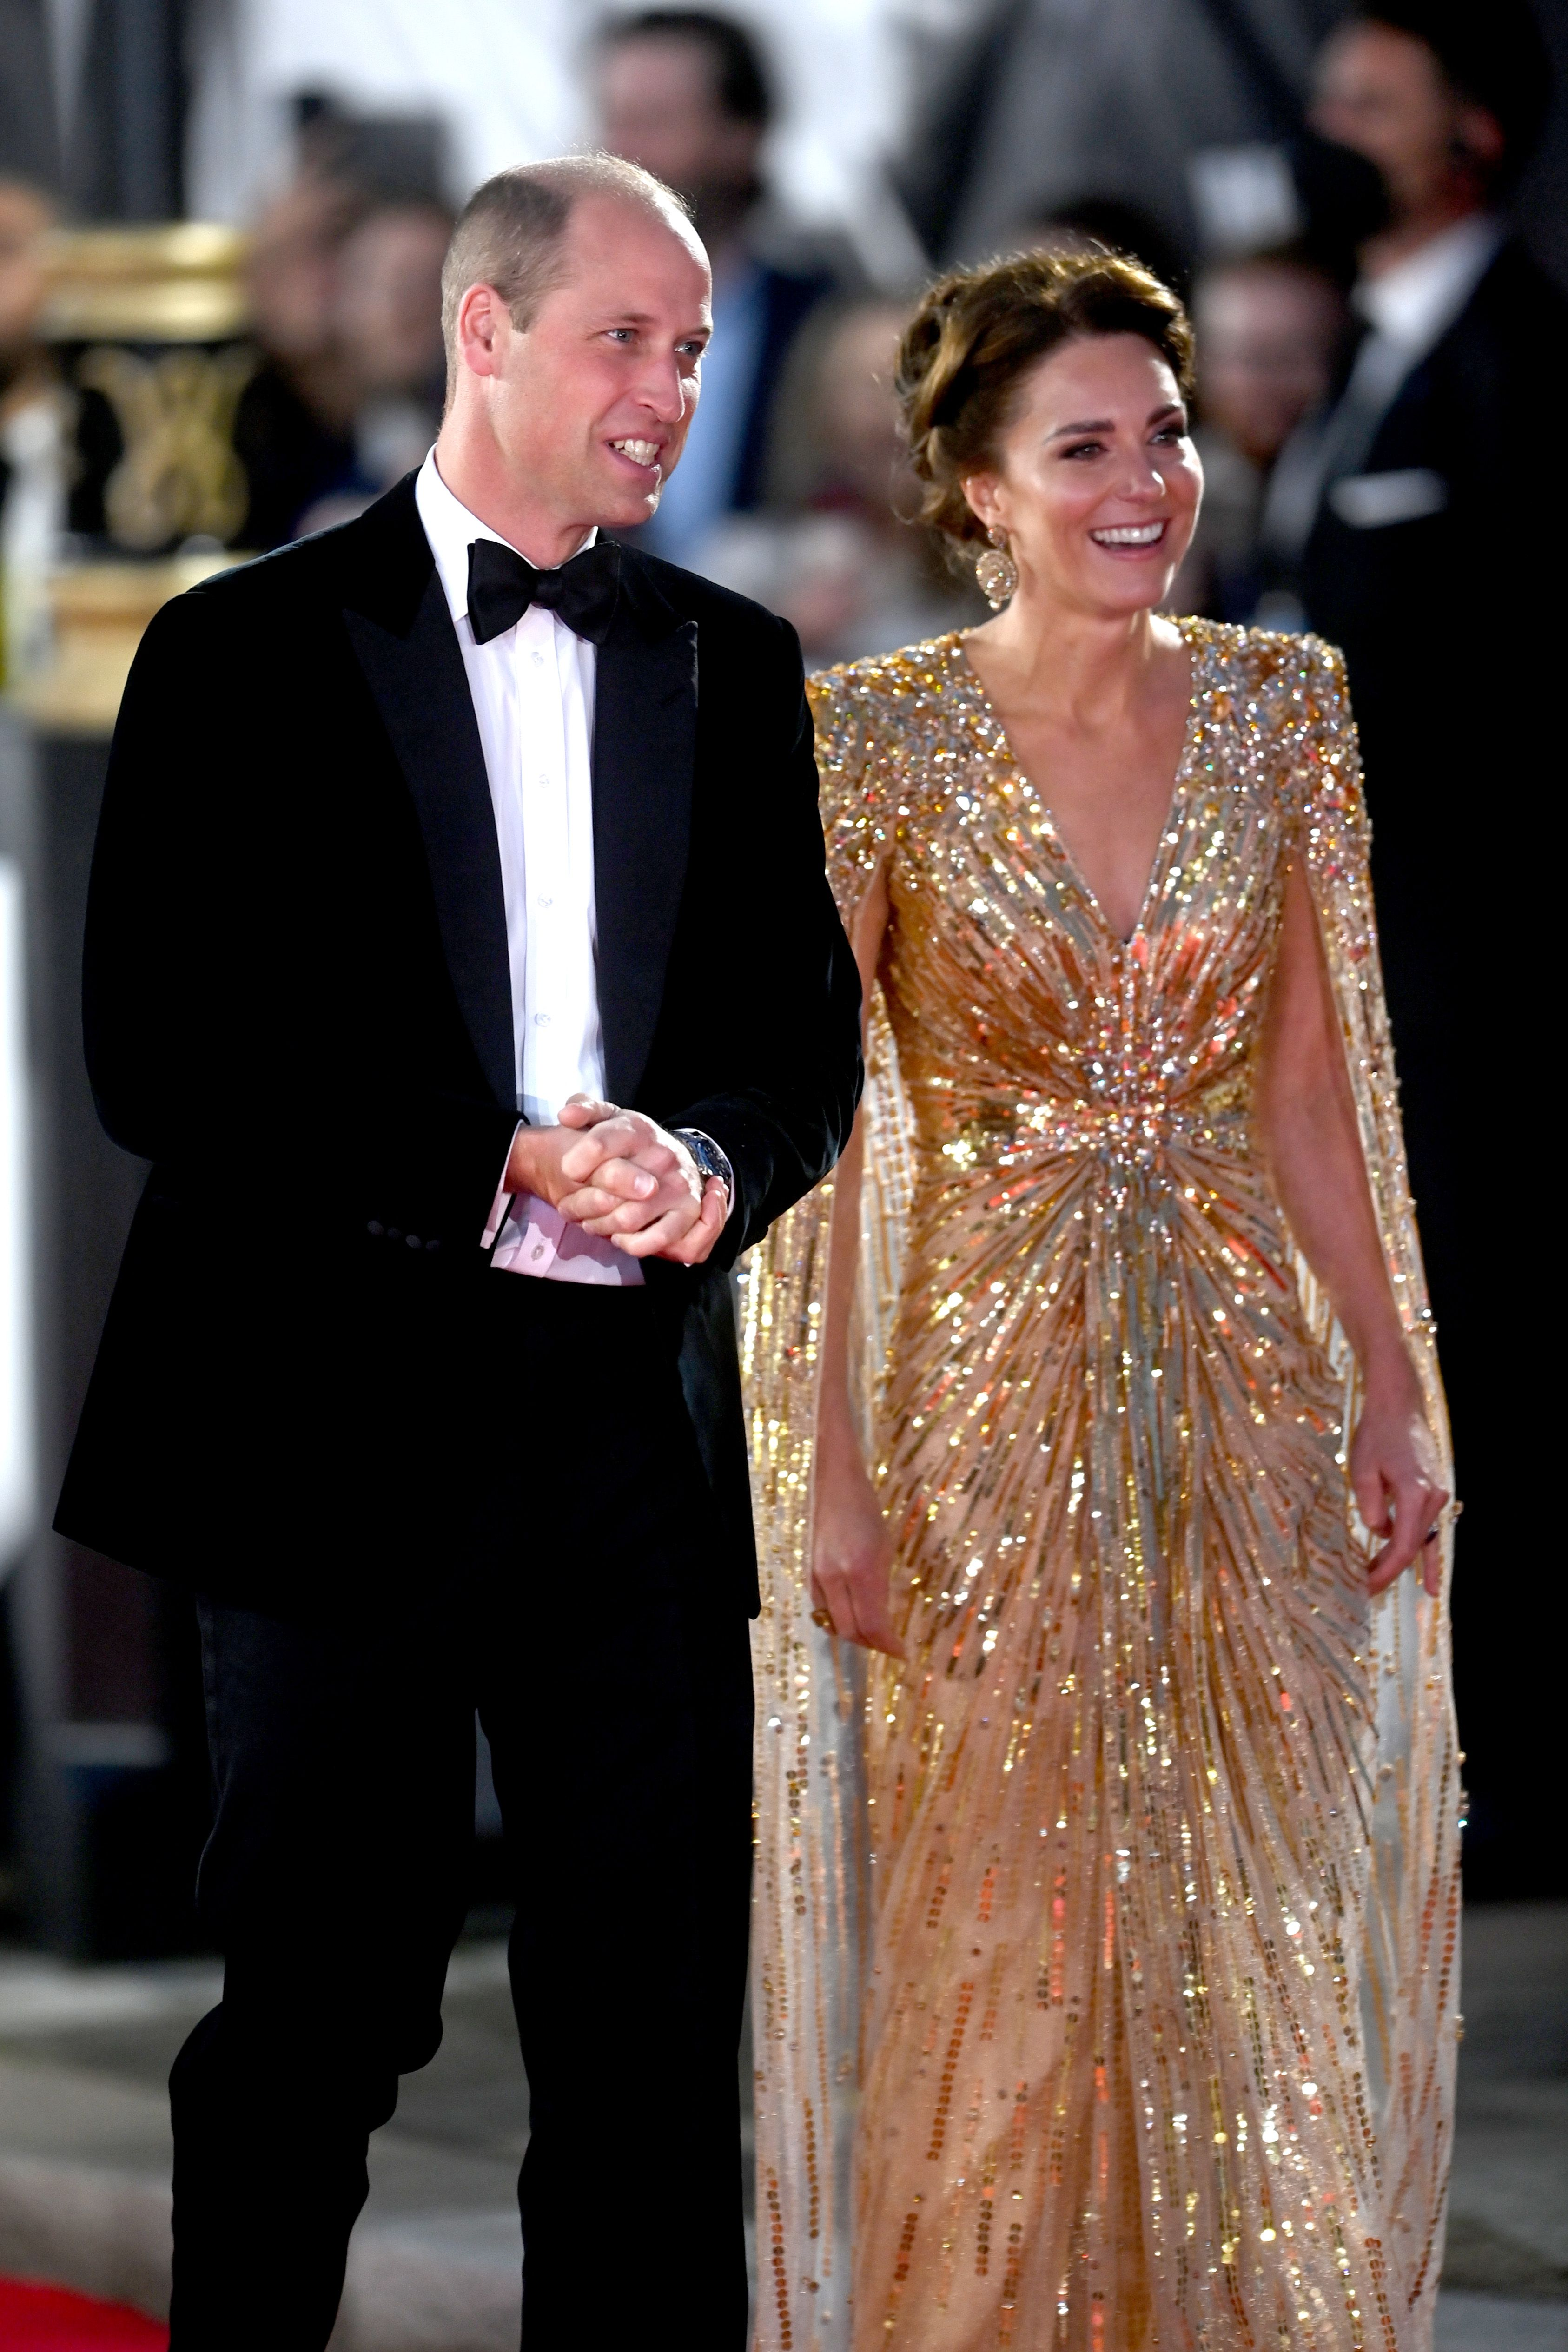 Kate Middleton Went Full Royal in a Gold-Sequined Cape Gown at the 'No Time to Die' Premiere